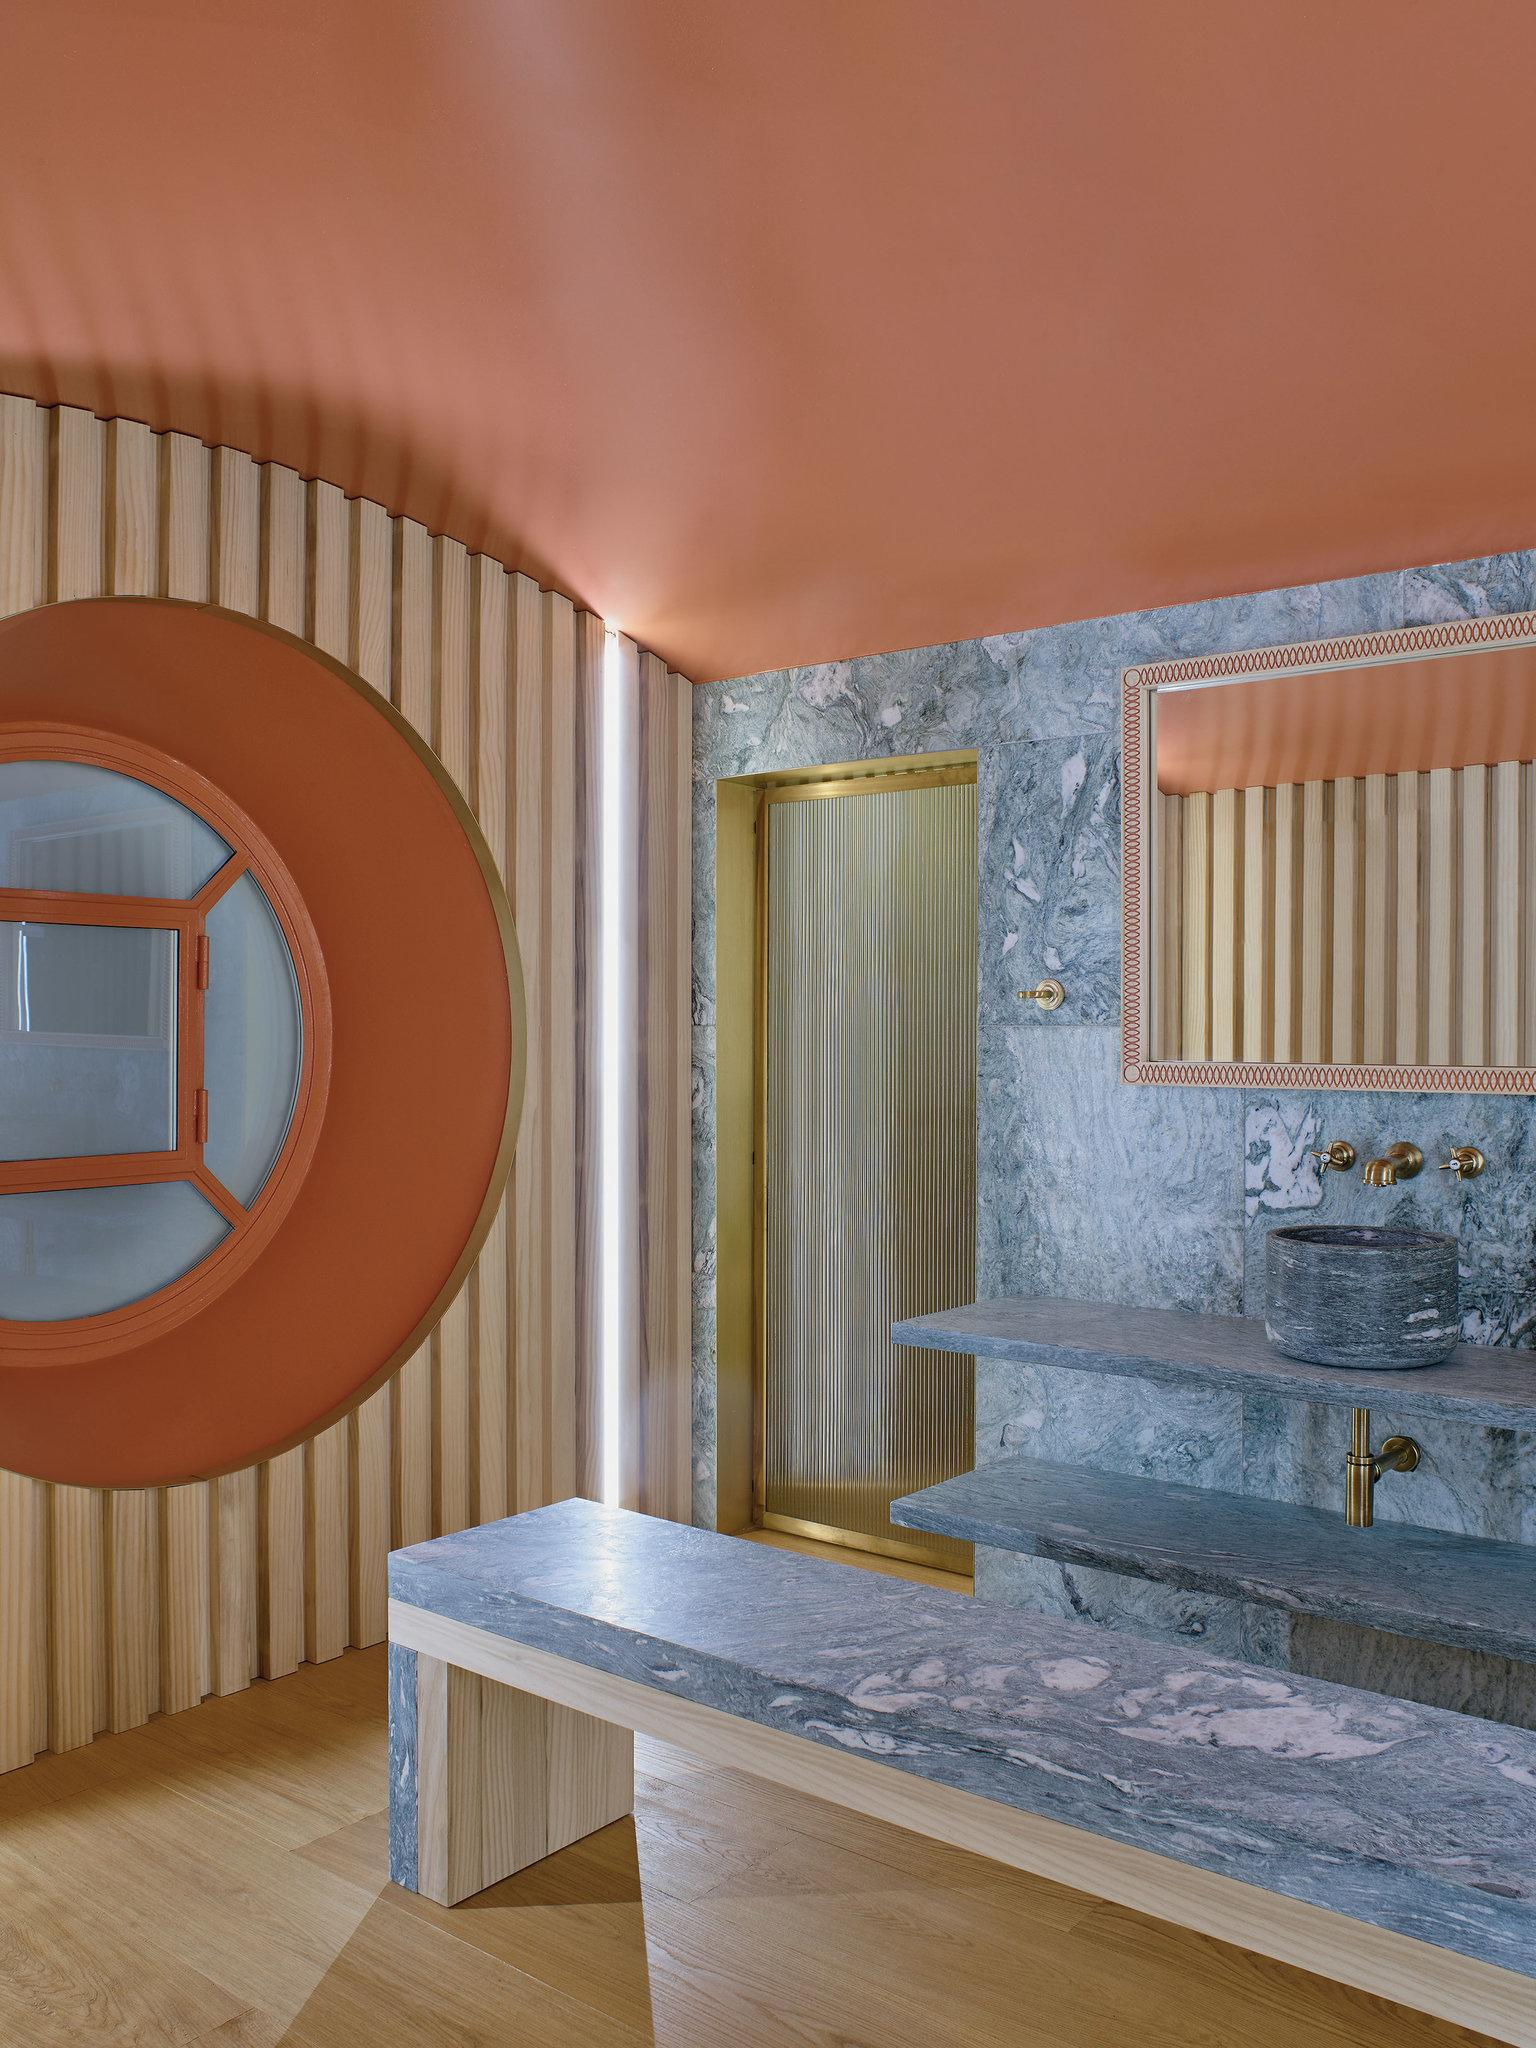 Eclectic Trends | Color at its best: Luca Guadagnino's Décor Debut